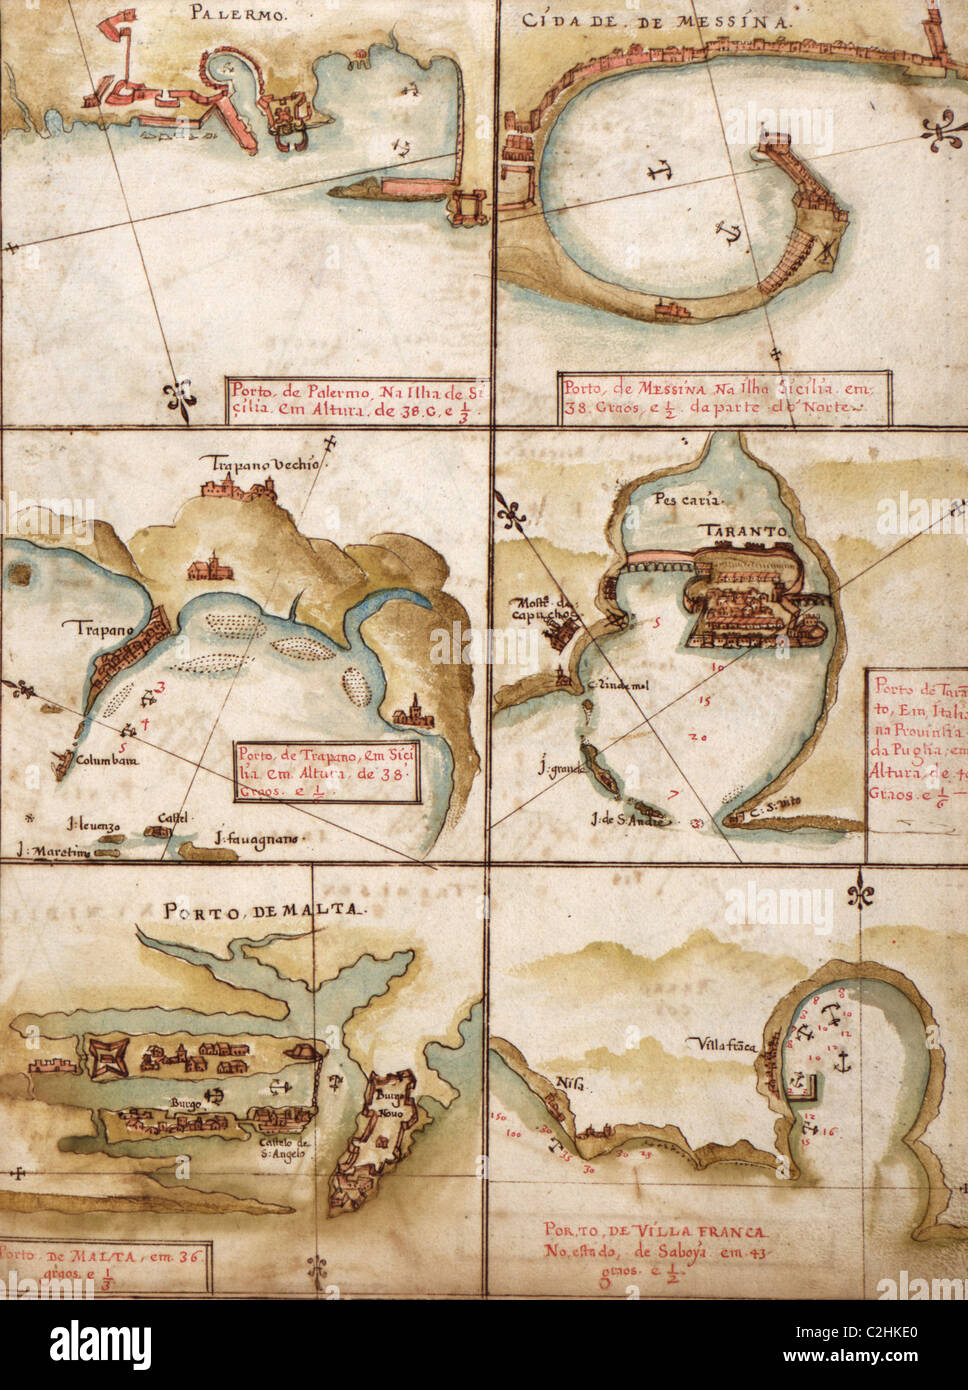 Portuguese maps of the Mediterranean - 1630 - Stock Image